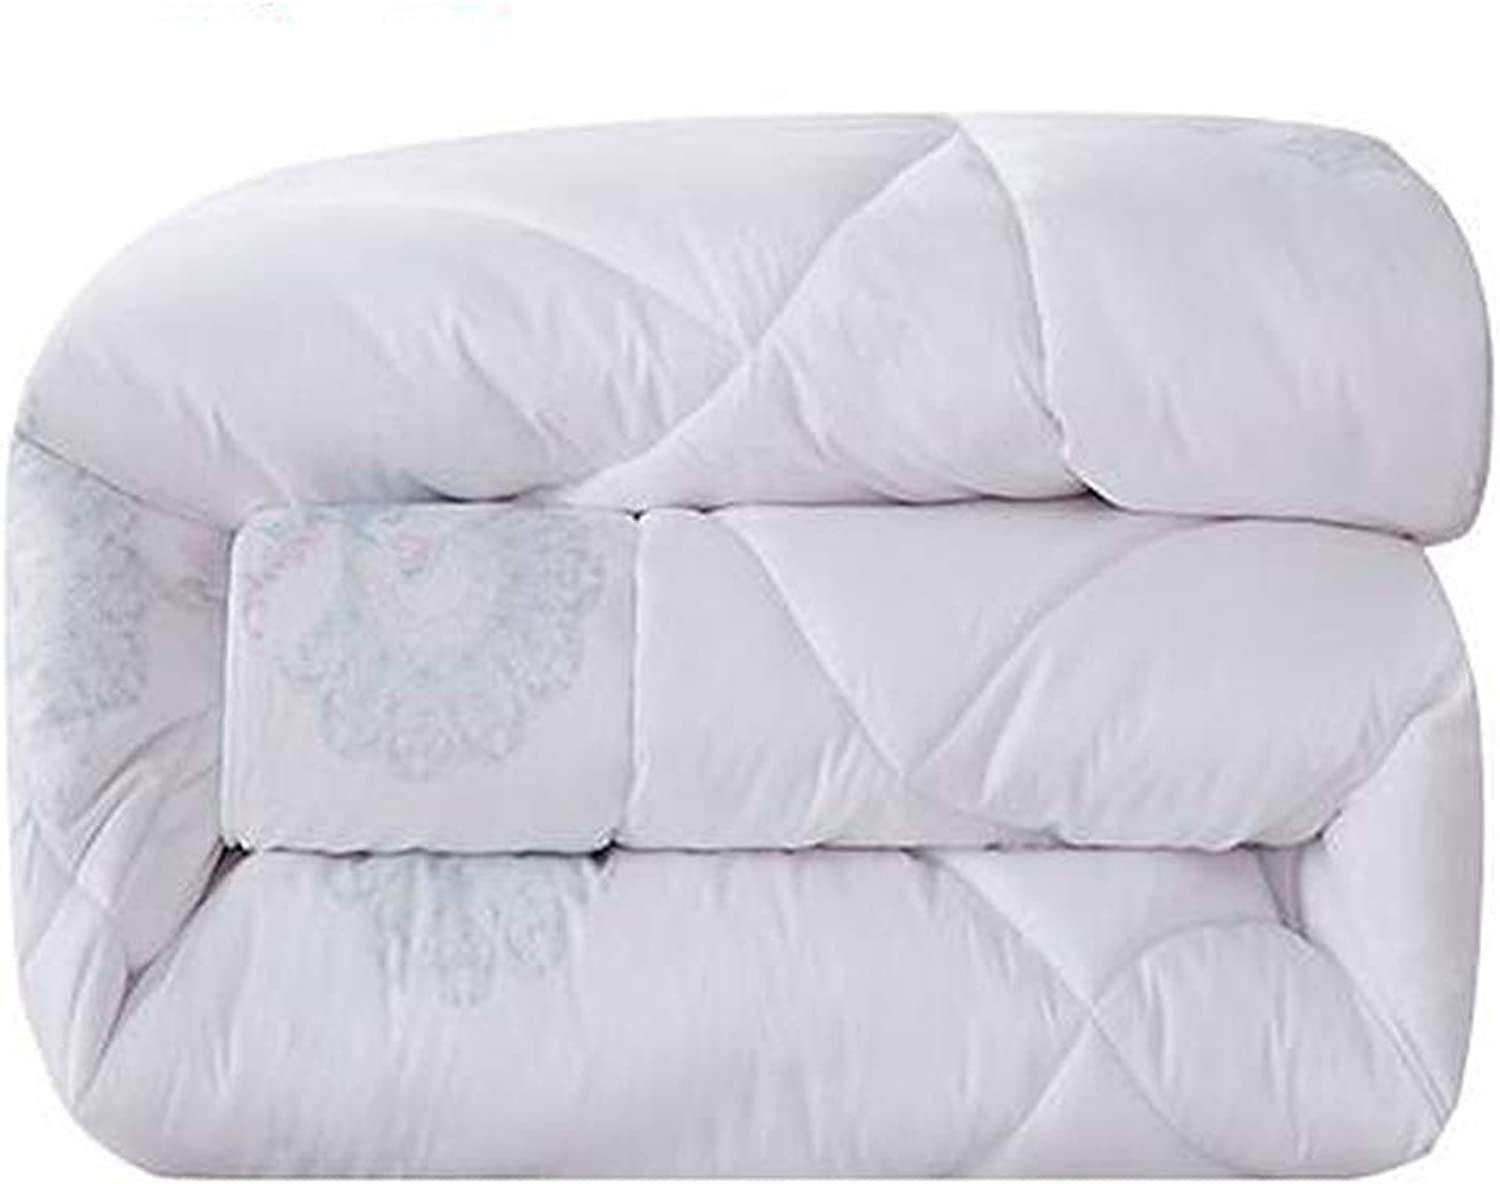 Quilt Comforter Quilted Double Hypoallergenic Breathable for All Season Fluffy Super Soft Quilted Comforter with Corner Tabs (Size   180cmx220cm2.5kg)